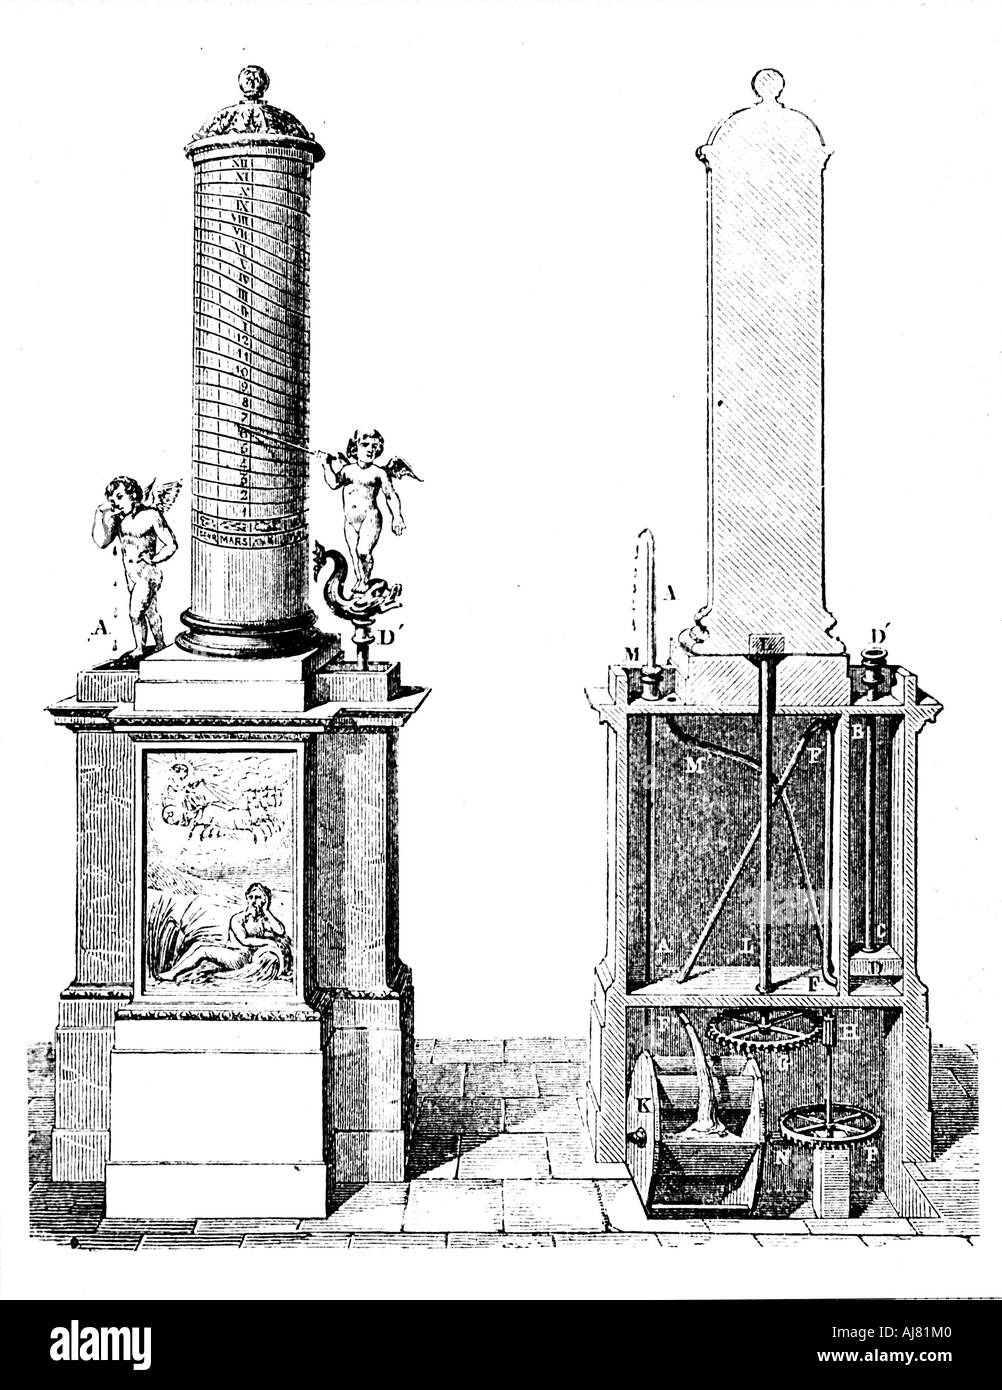 a history of clepsydra a water clock Clepsydra clepsydra, latin, from greek klepsudra : kleptein, kleps-, to steal + hudōr water, was an horological instrument of great antiquity, among the egyptians and other eastern nations, probably before sun-dials were invented though the name of the original inventor is not handed down to us  the construction has been varied in different ages and countries, according to the variation of.